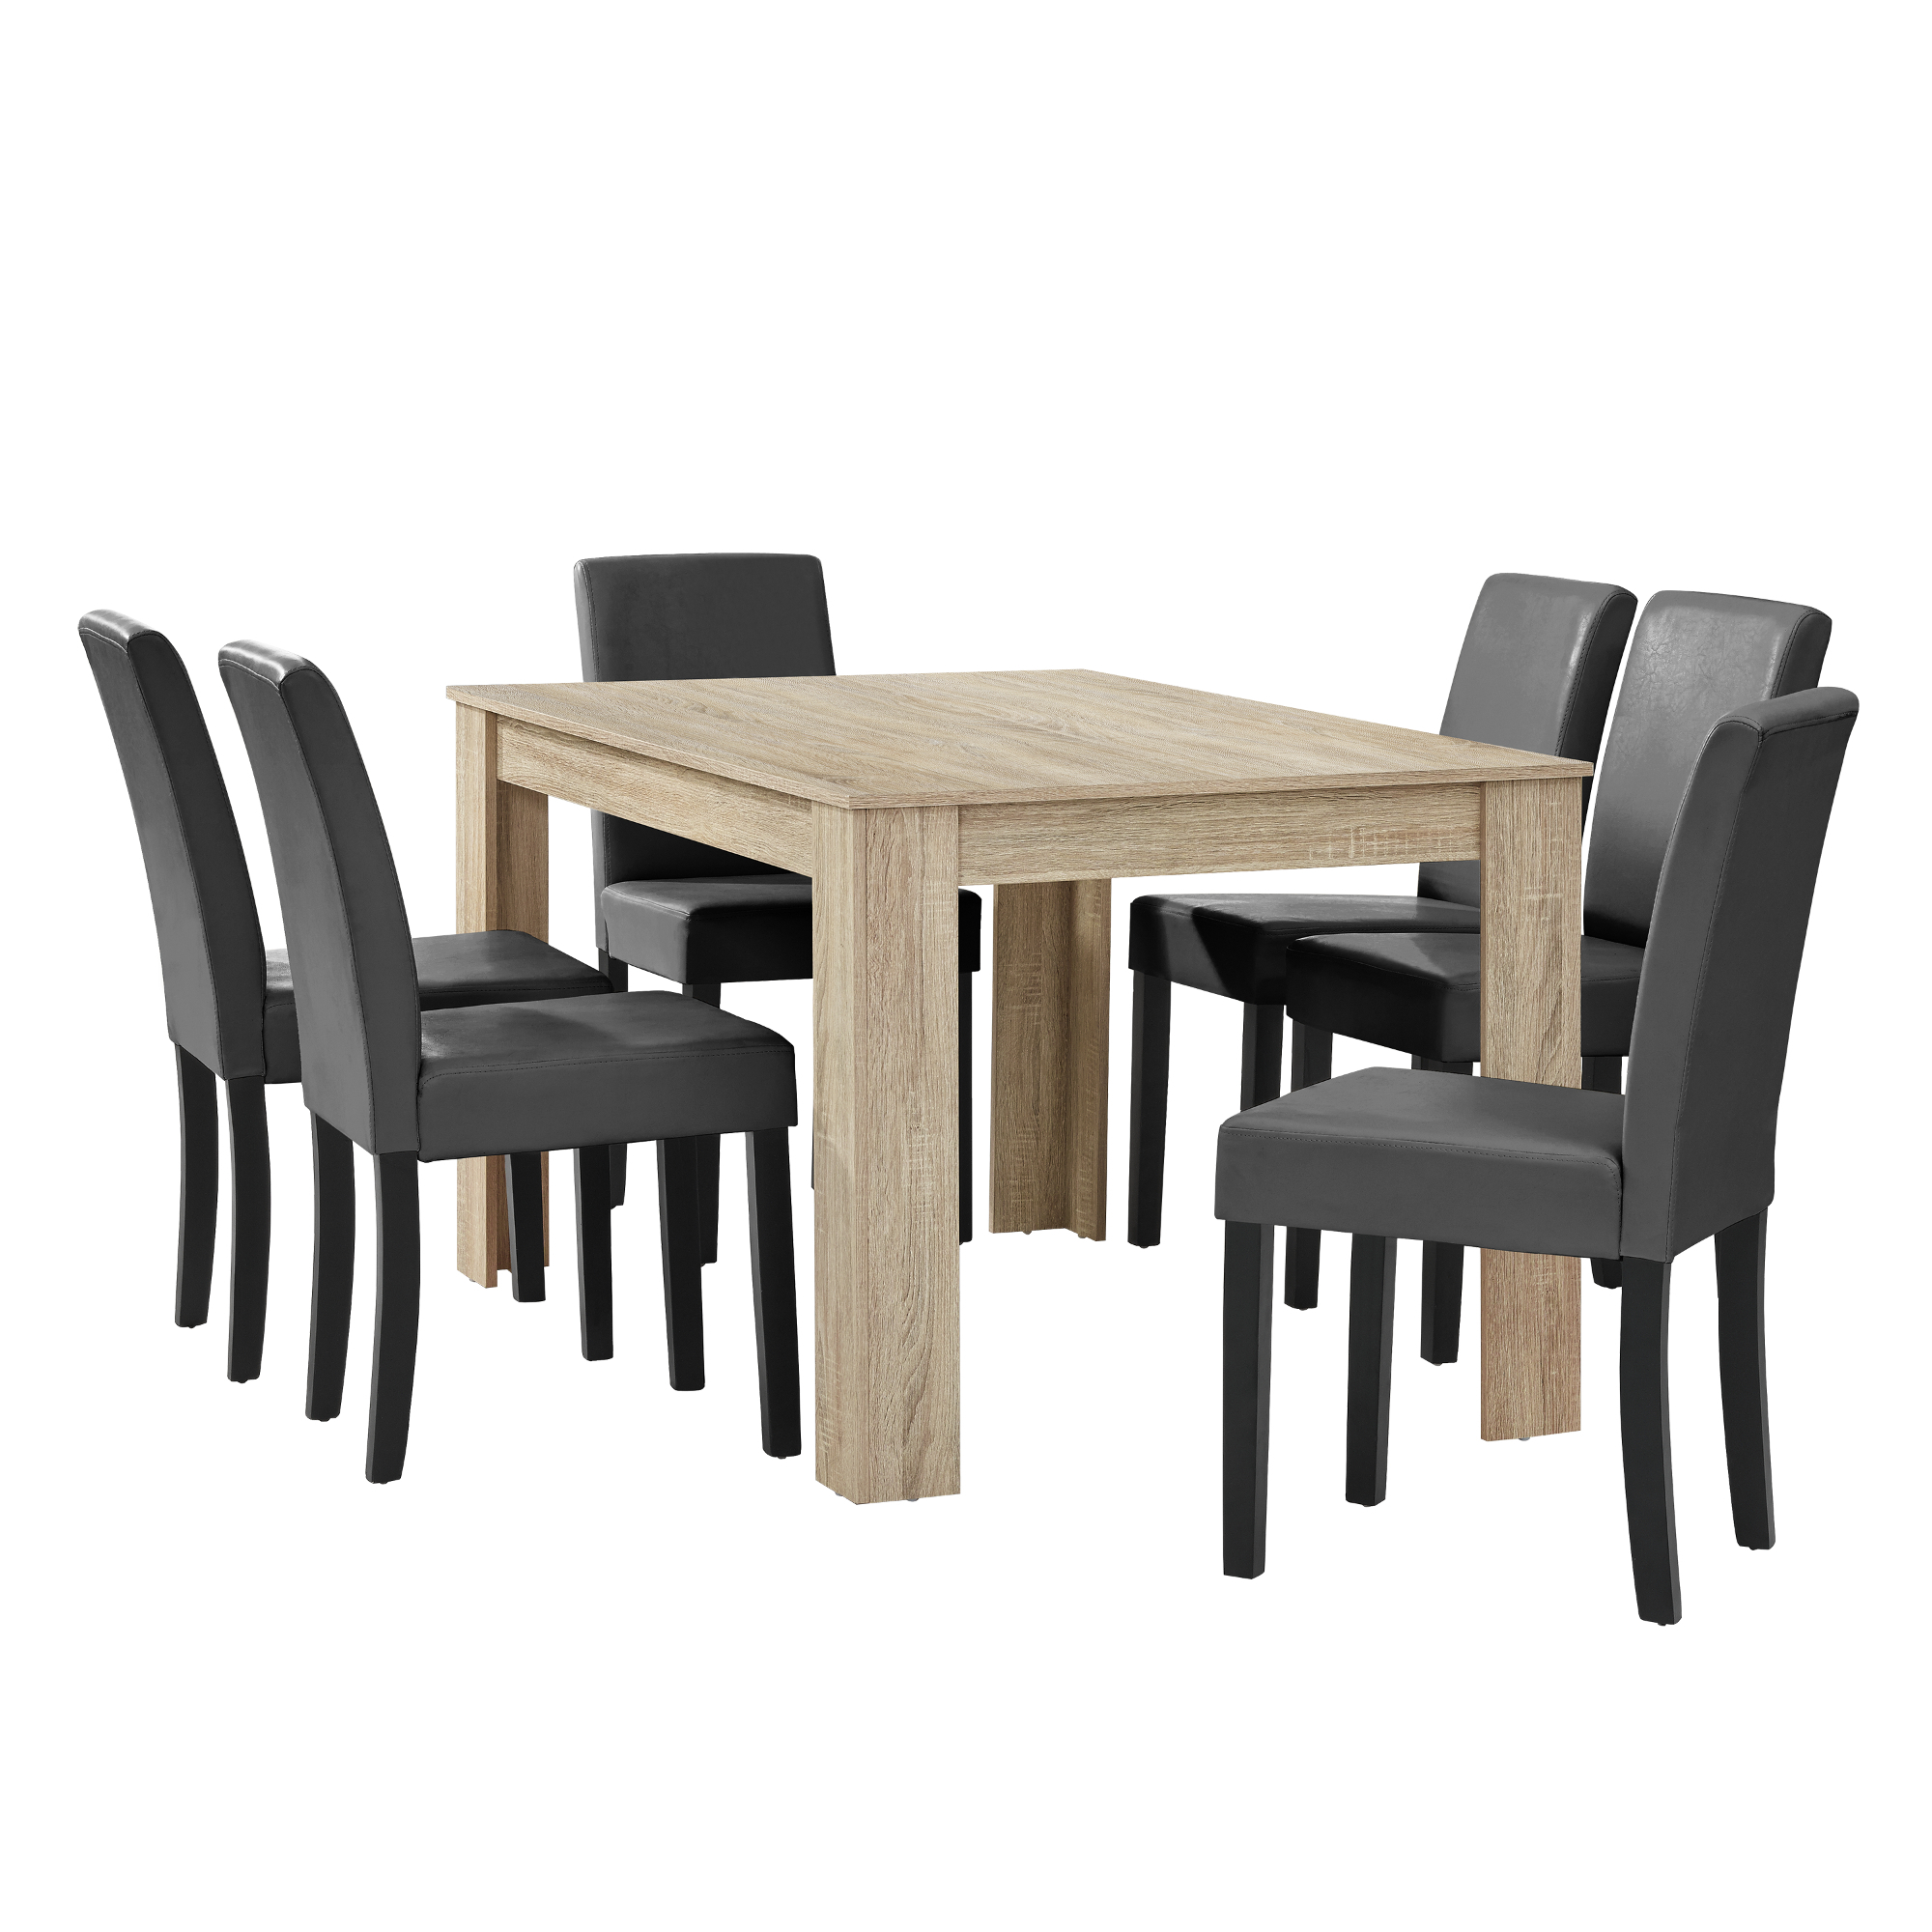 dining table limed oak with 6 chairs dark grey 140x90 table chairs